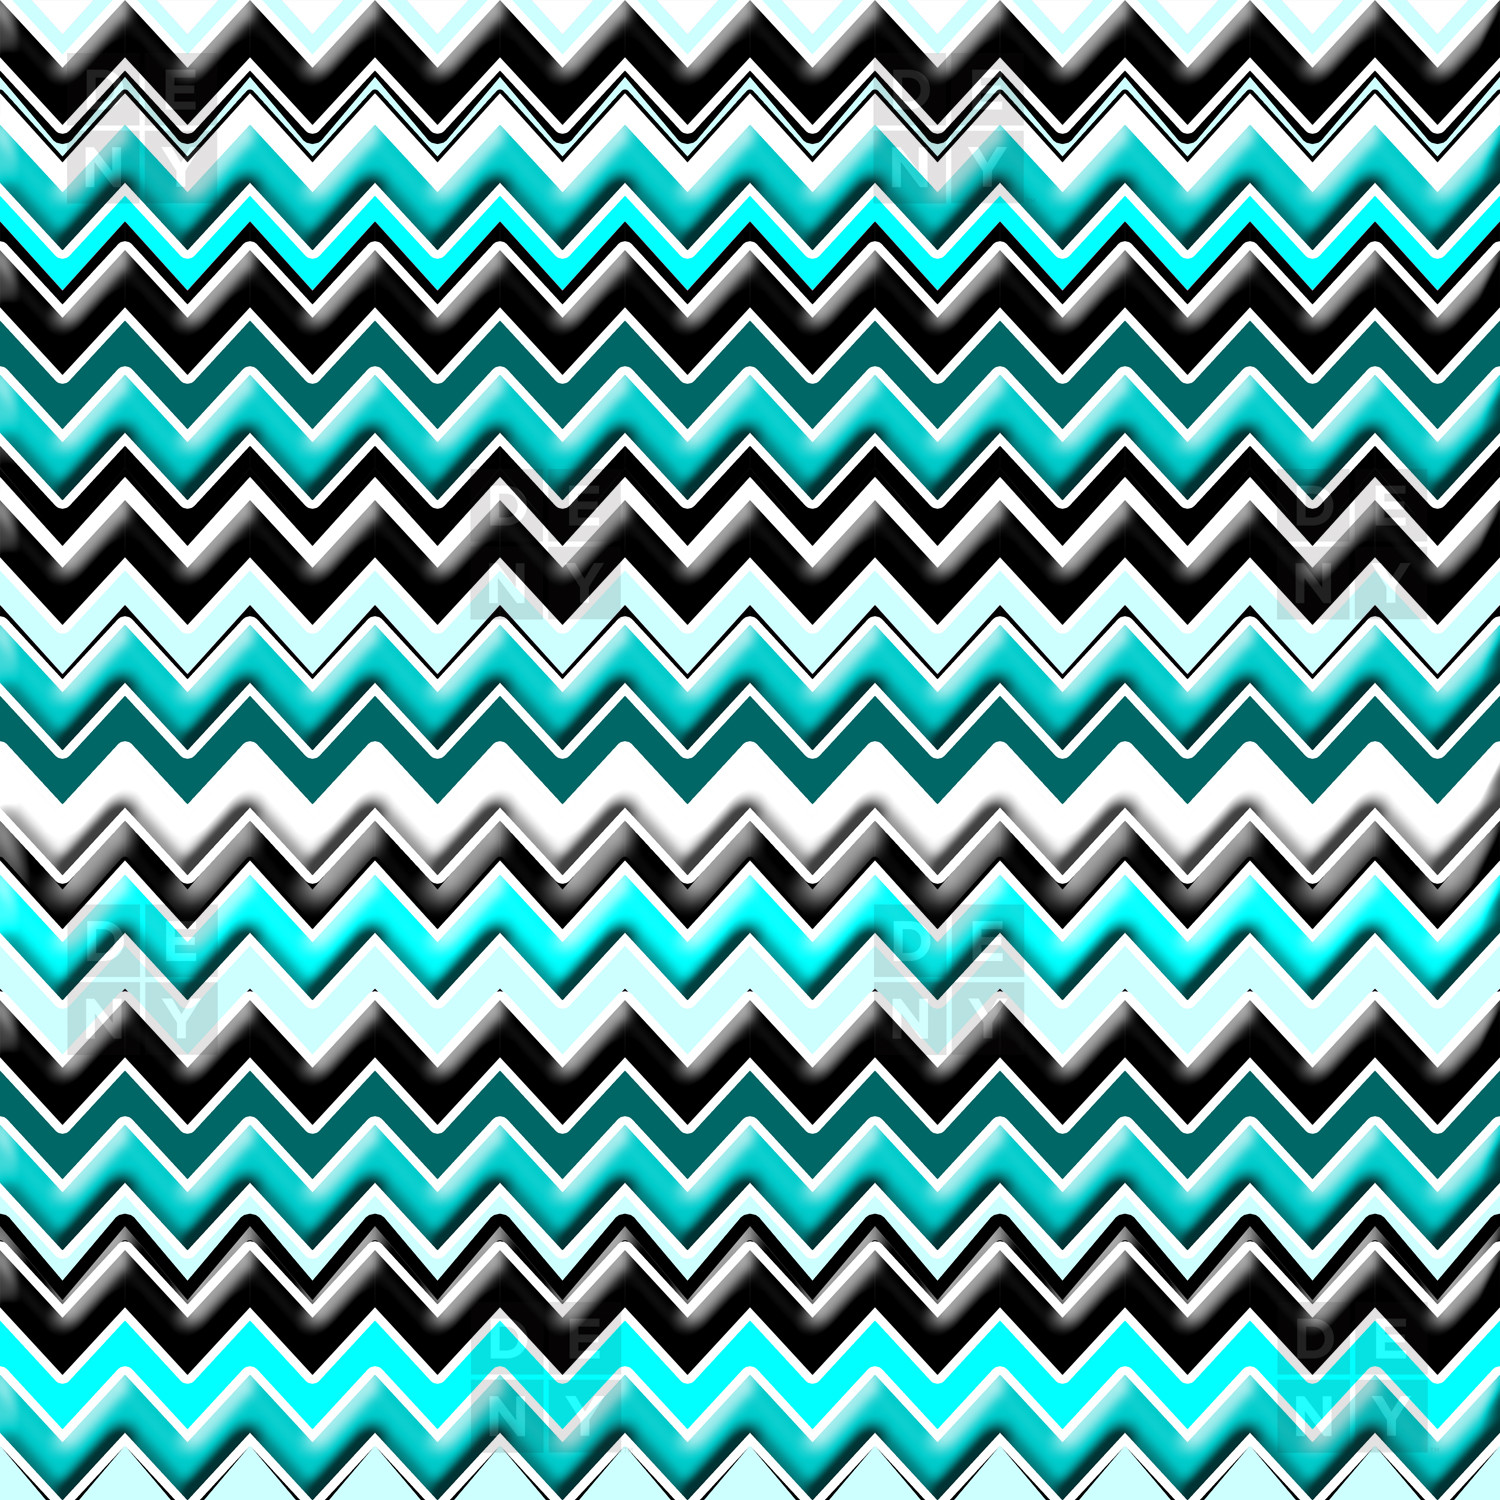 Pink chevron wallpaper wallpapersafari for Teal chevron wallpaper